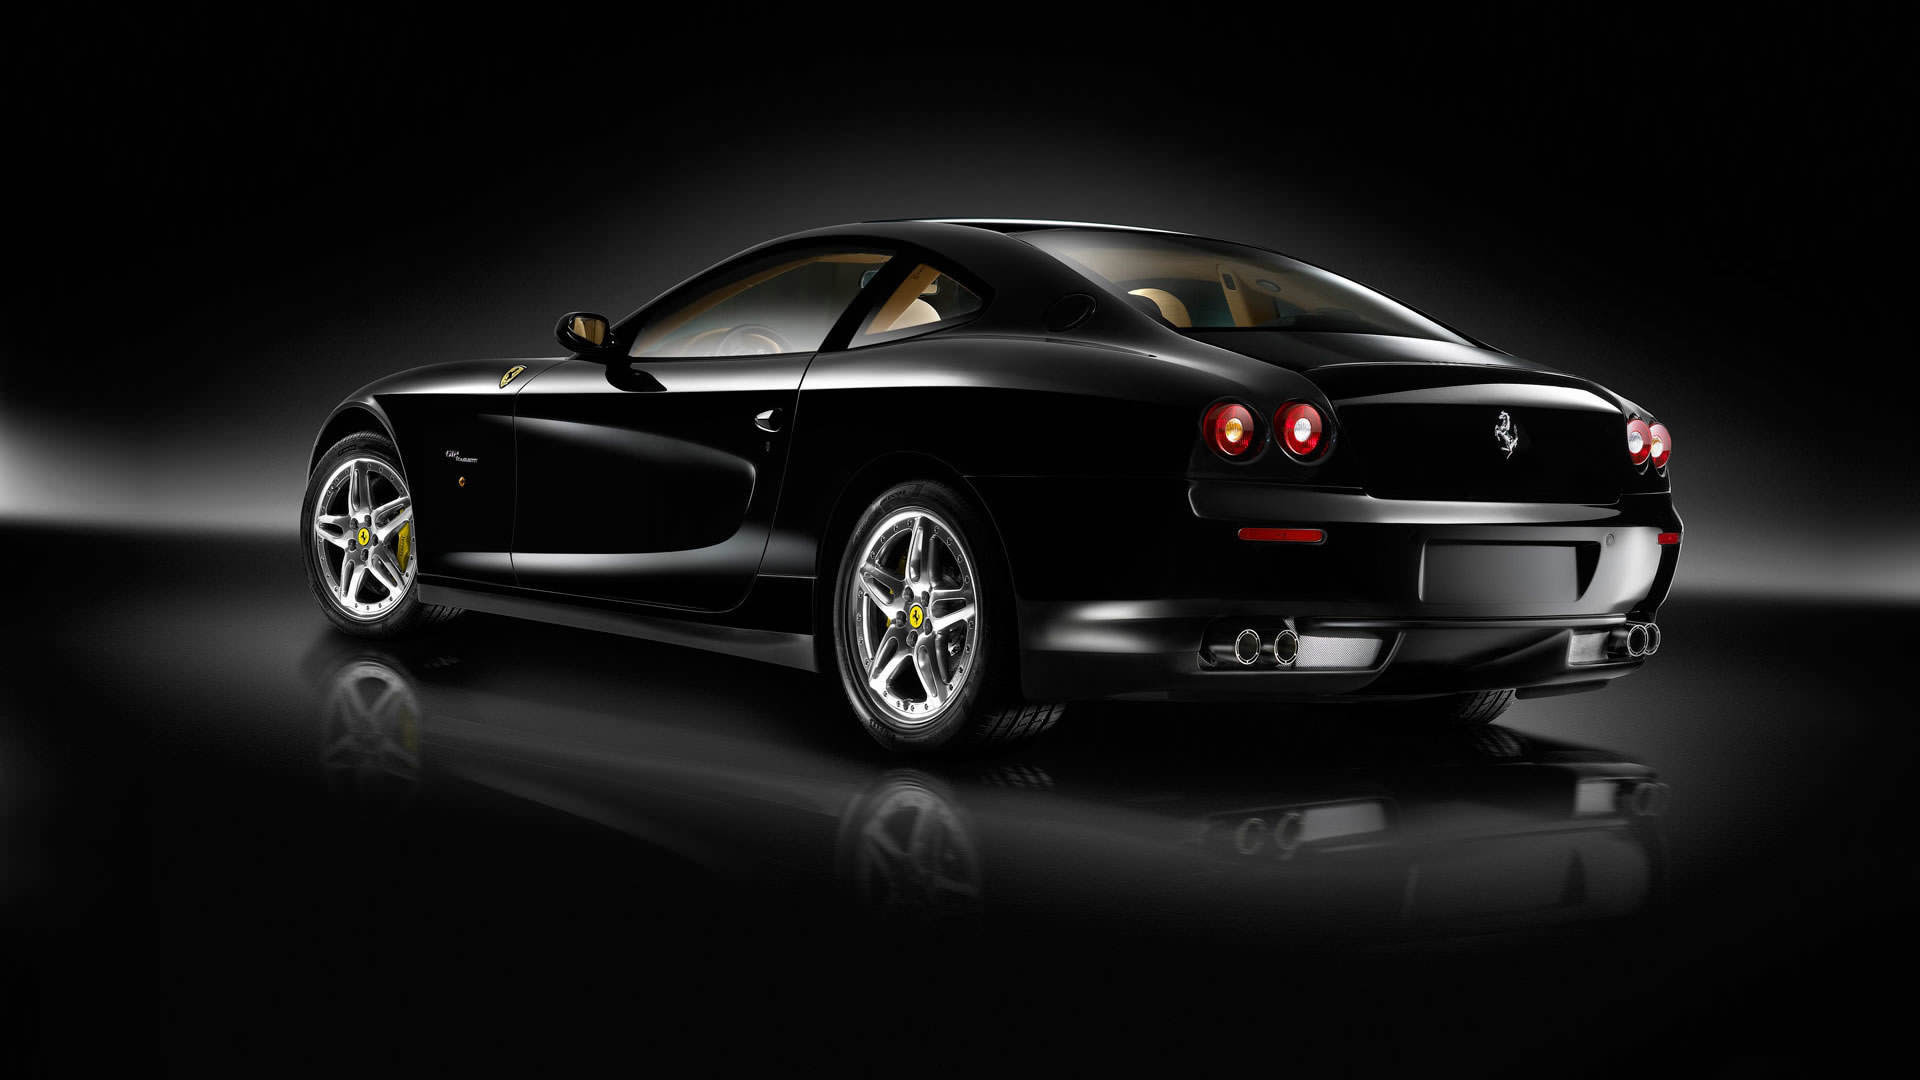 Ferrari Black Wallpaper Cars Wallpaper